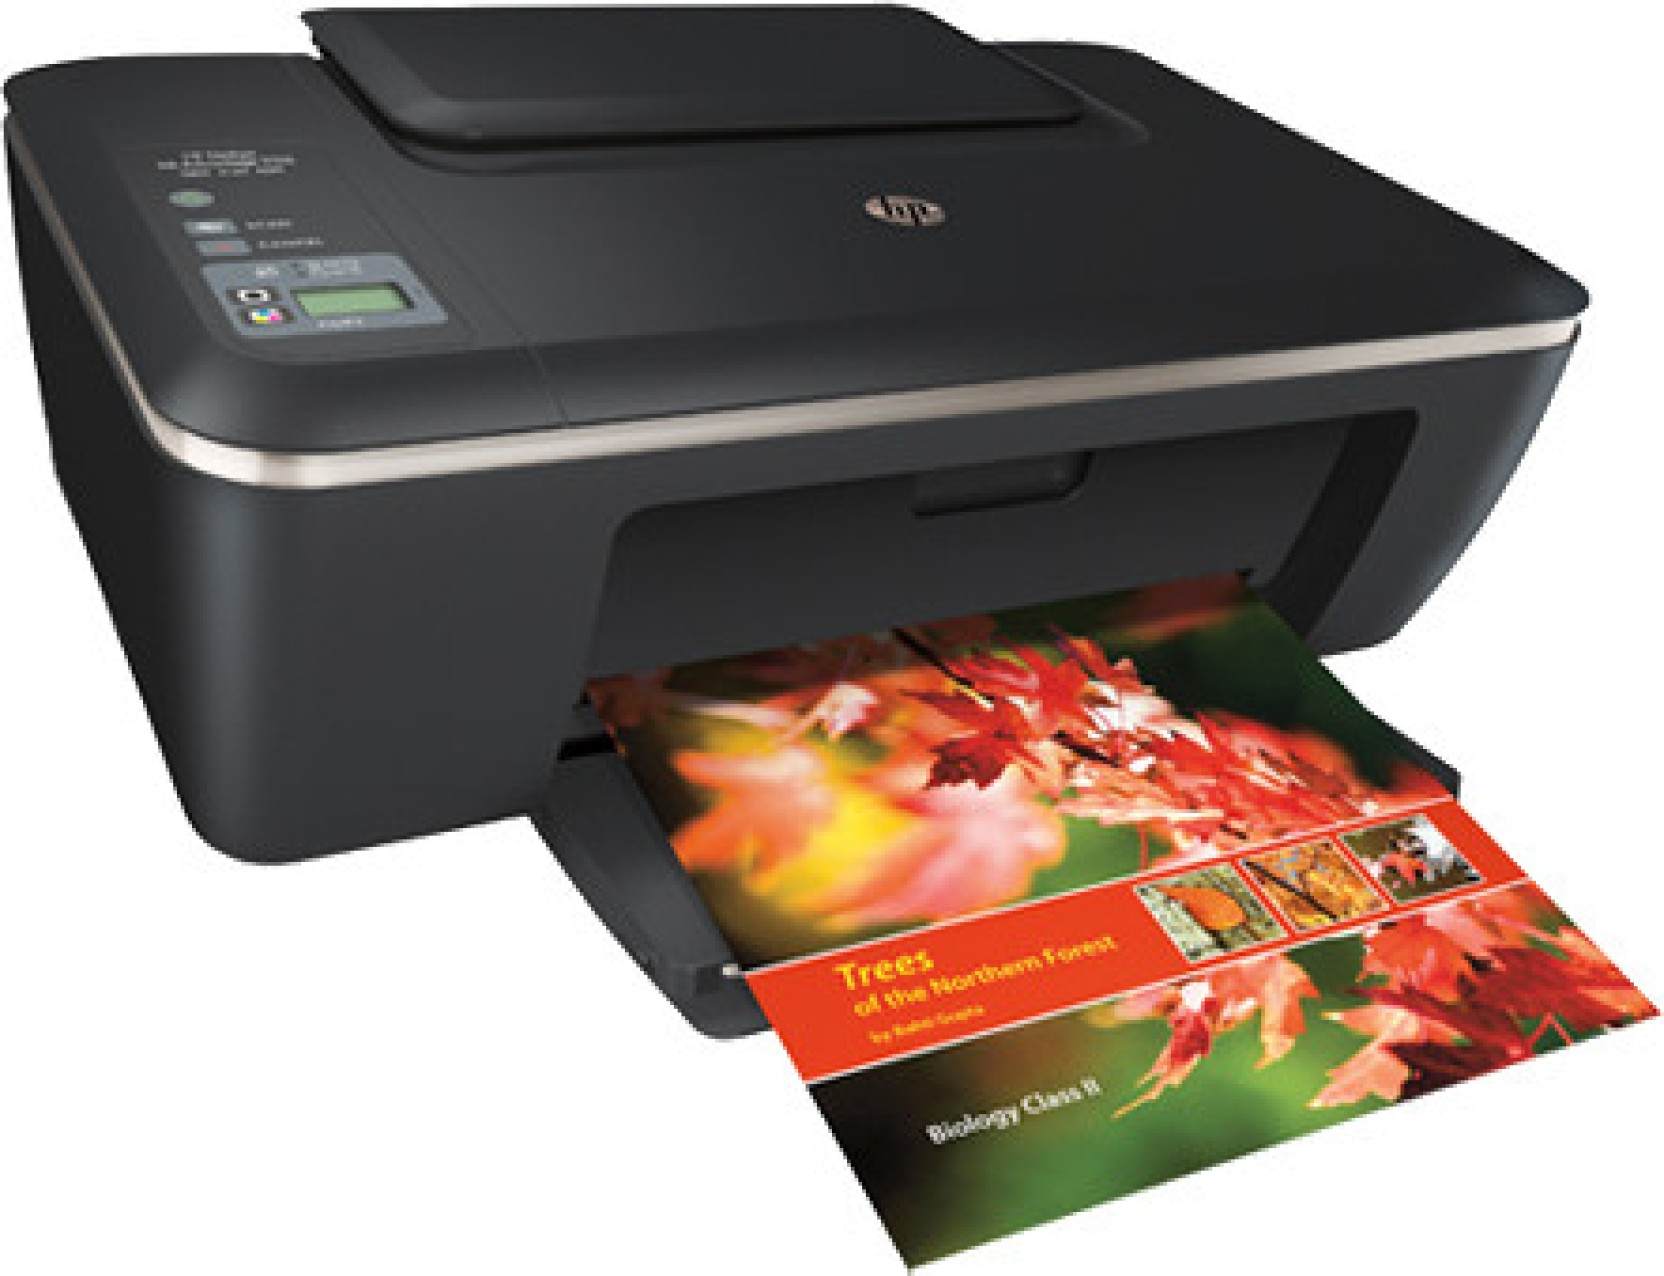 Hp Deskjet Ink Advantage 2515 All In One Printer 678 Black Catridge Cz107aa Original Compare